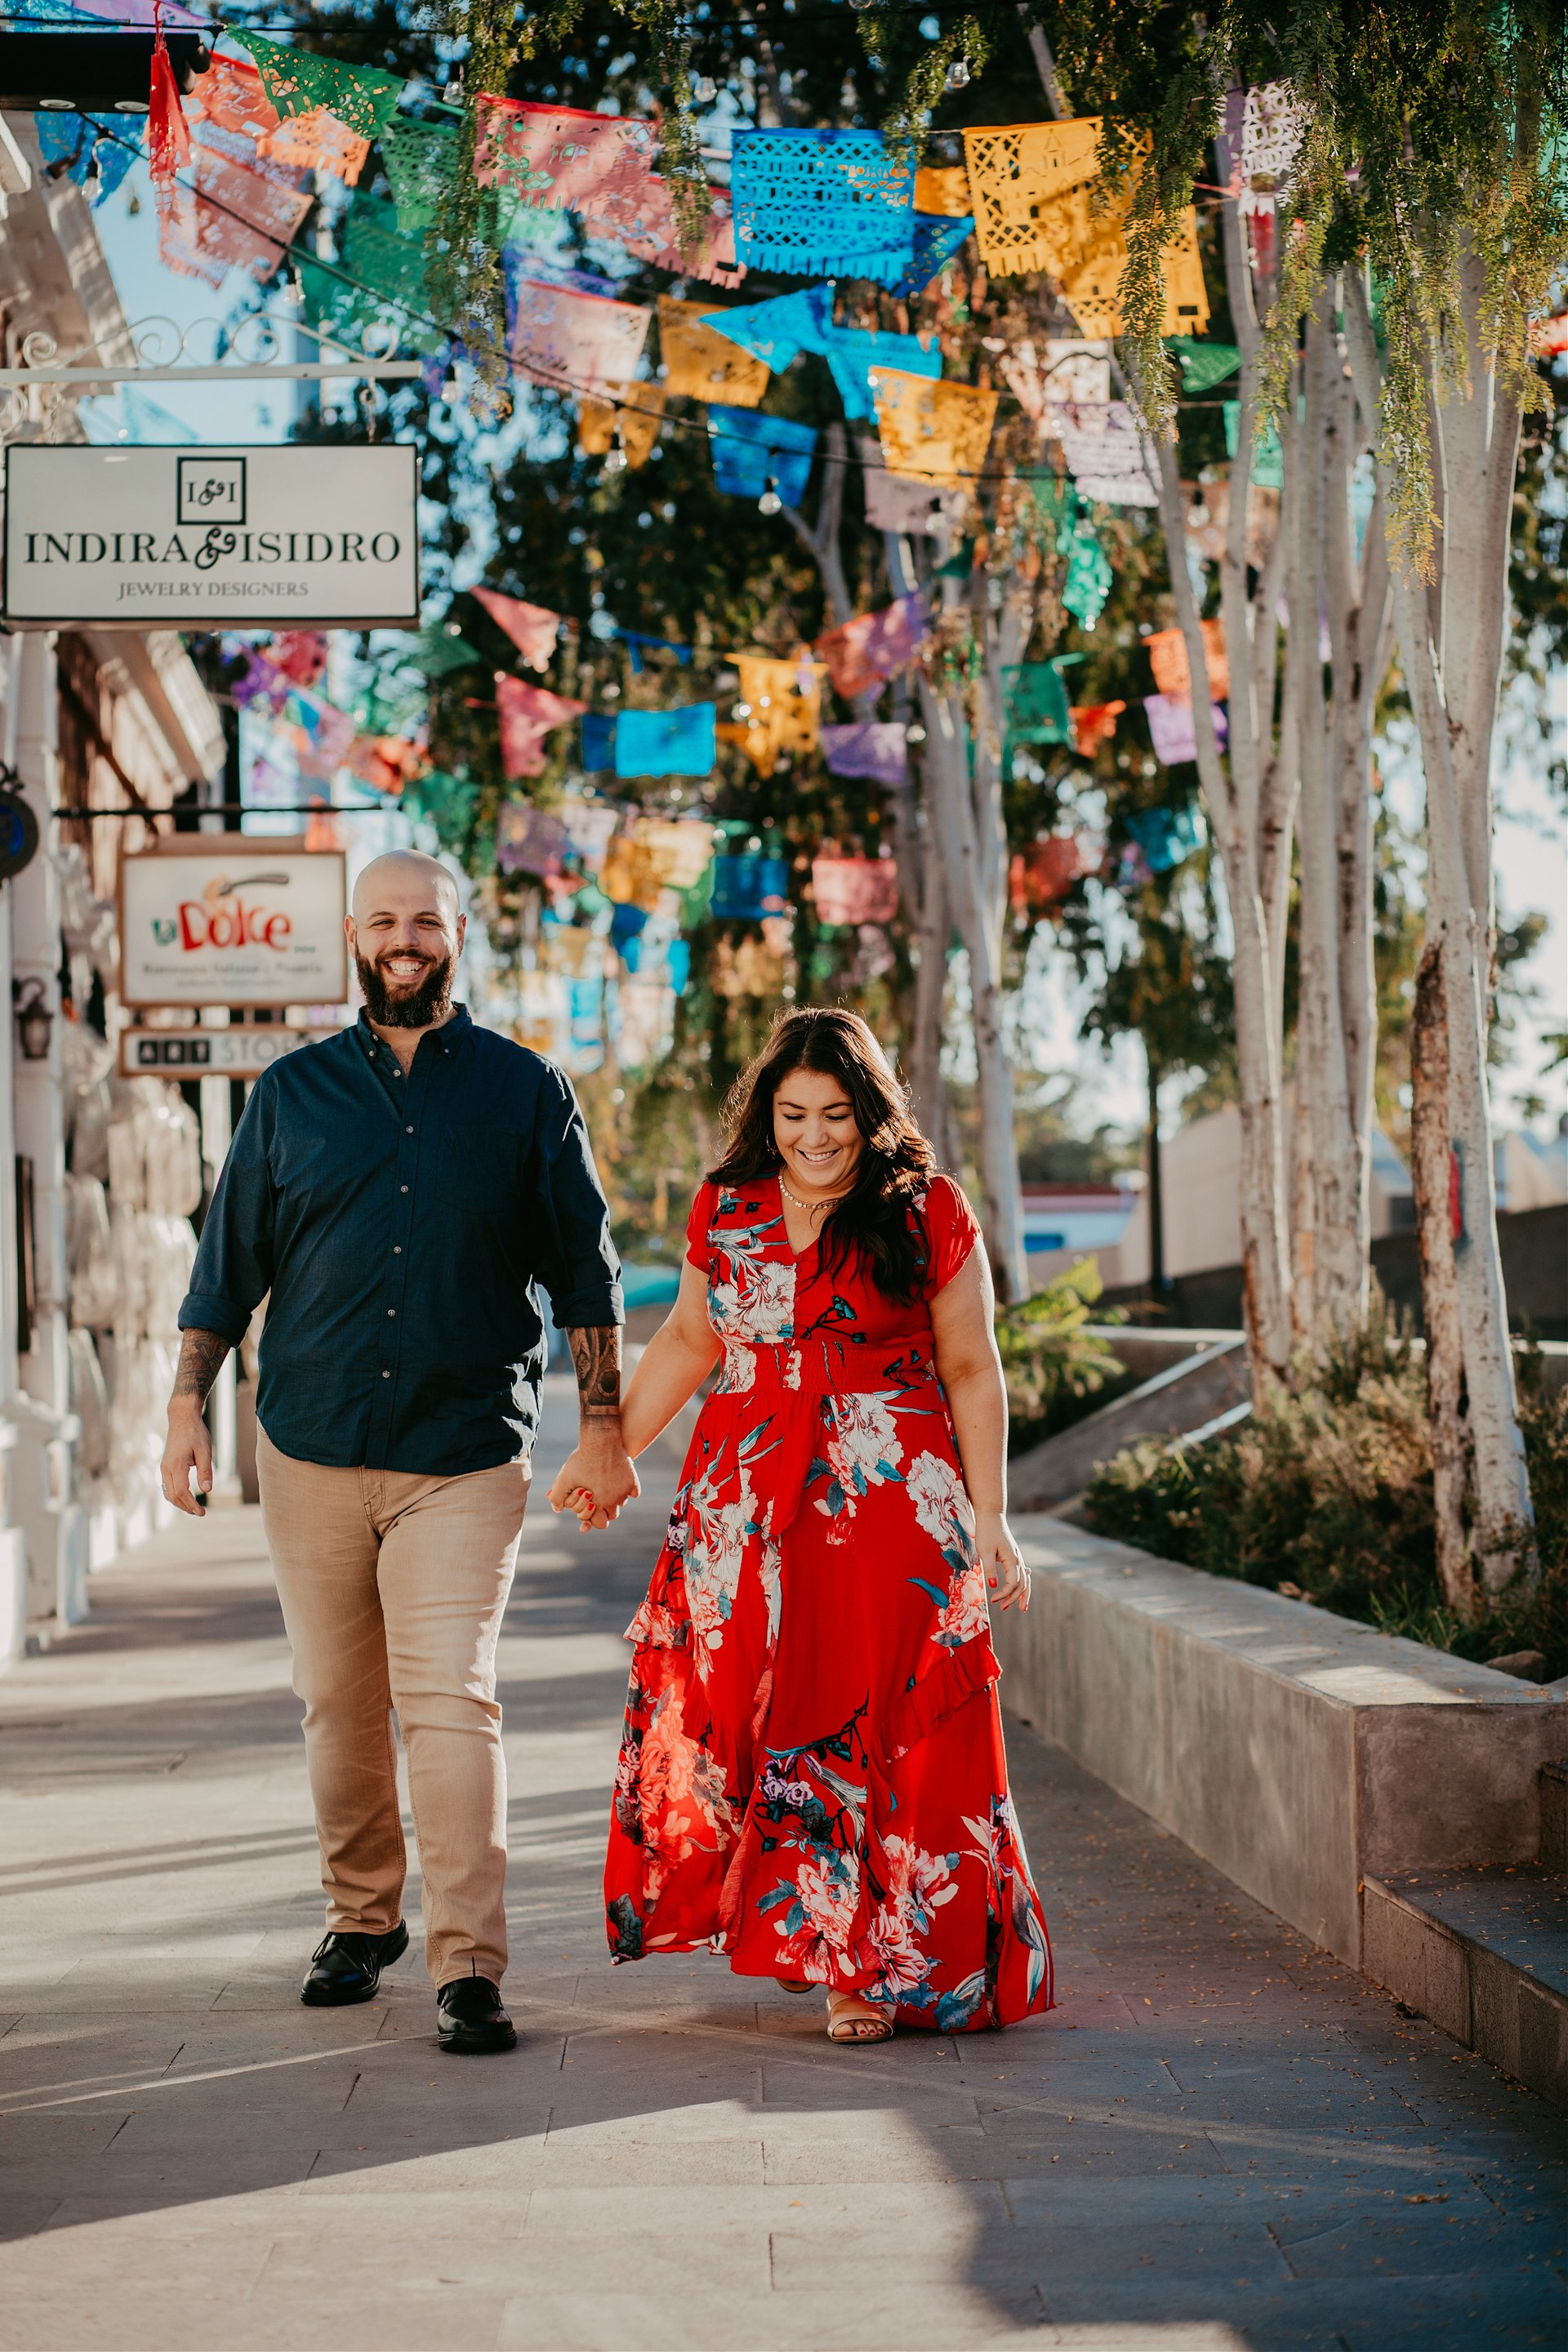 Flytographer Travel Story - Engagement Photos in Cabo